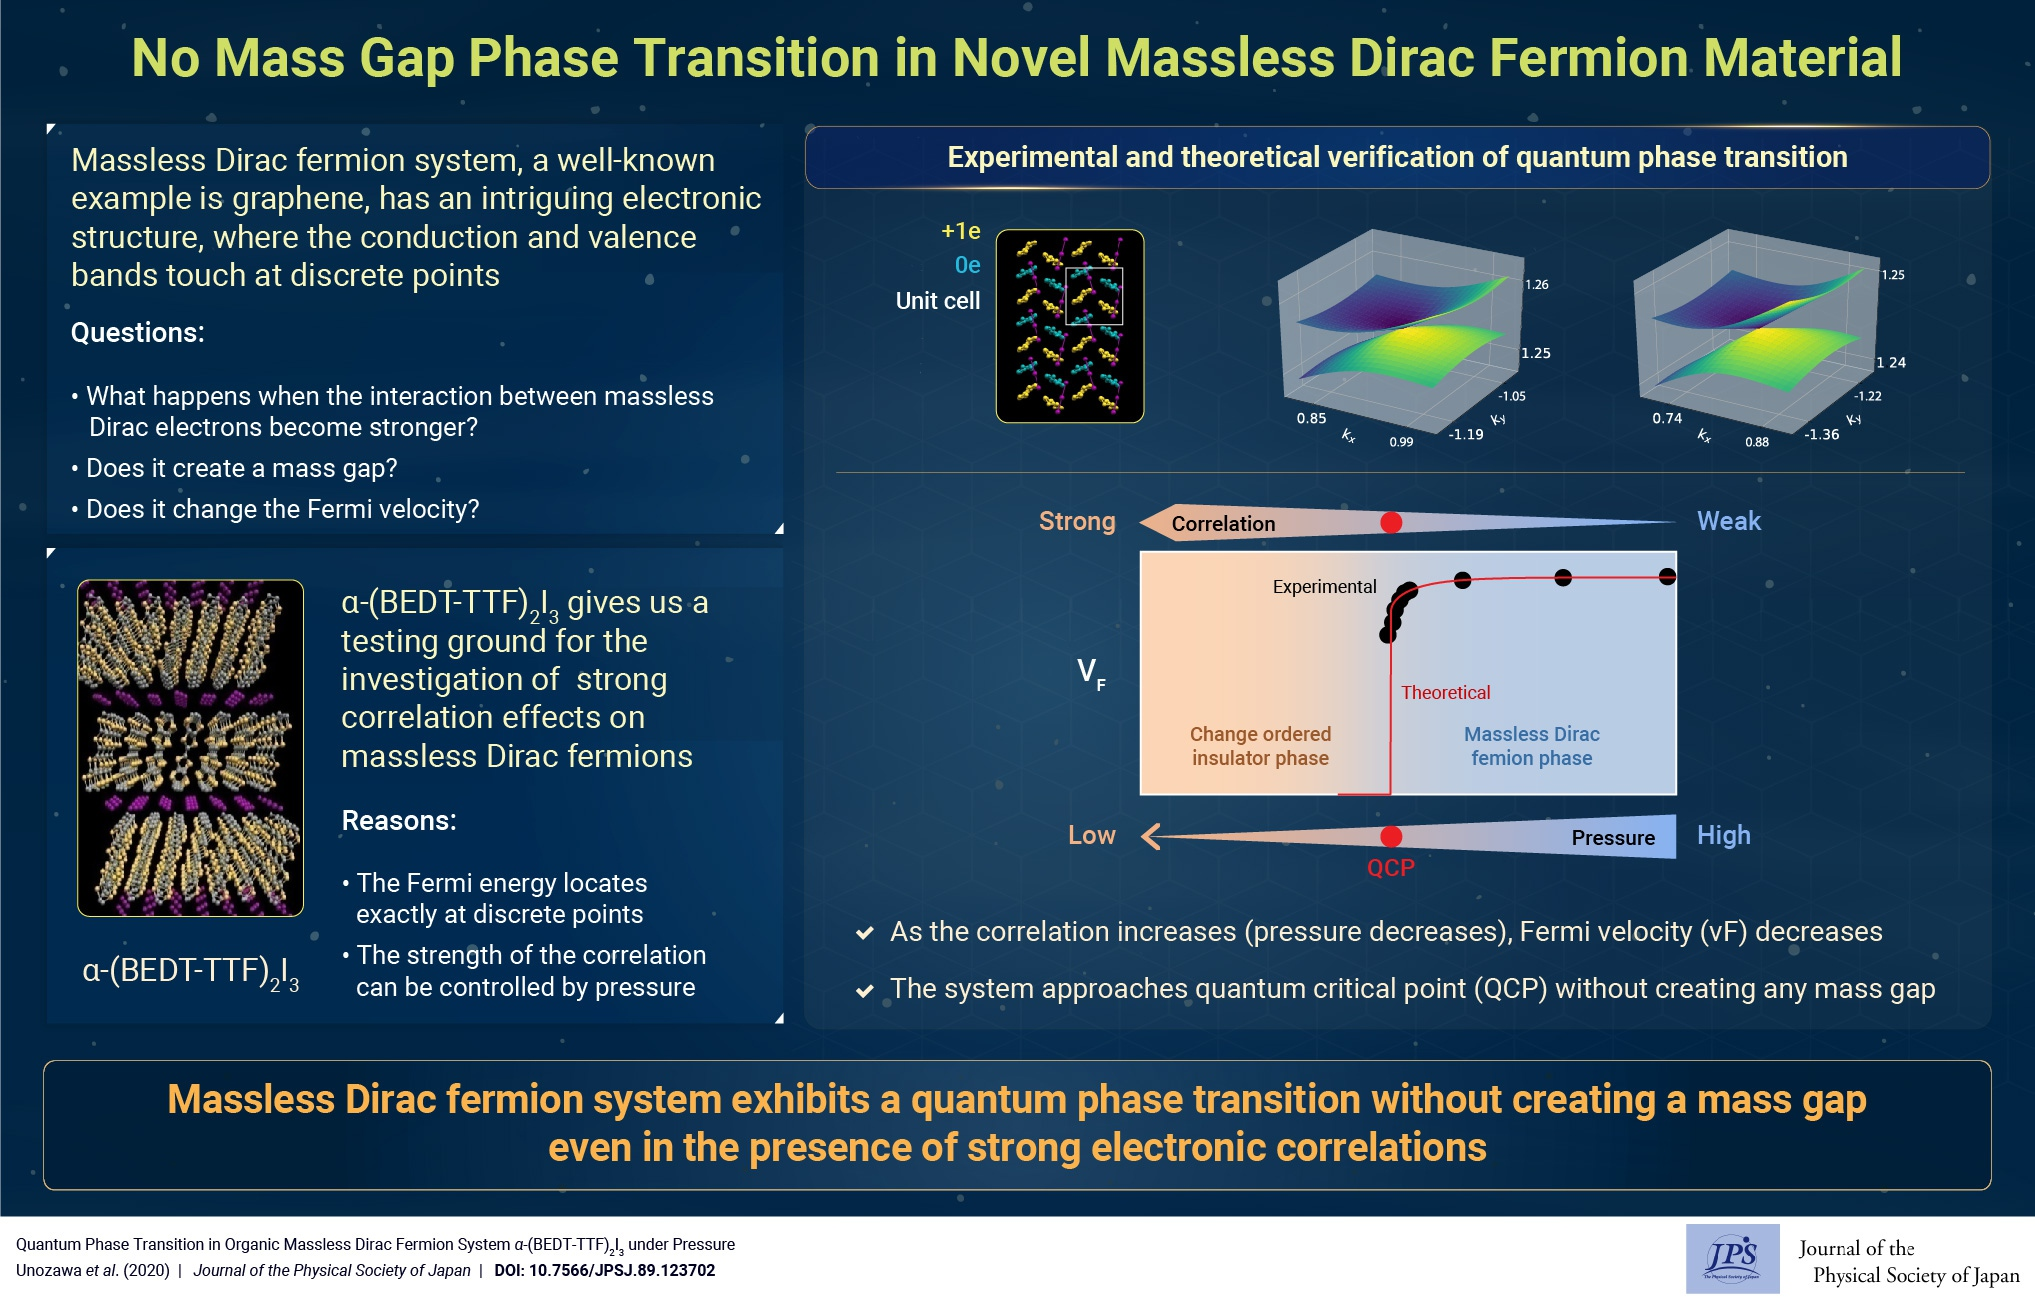 No Mass Gap Phase Transition in Novel Massless Dirac Fermion Material